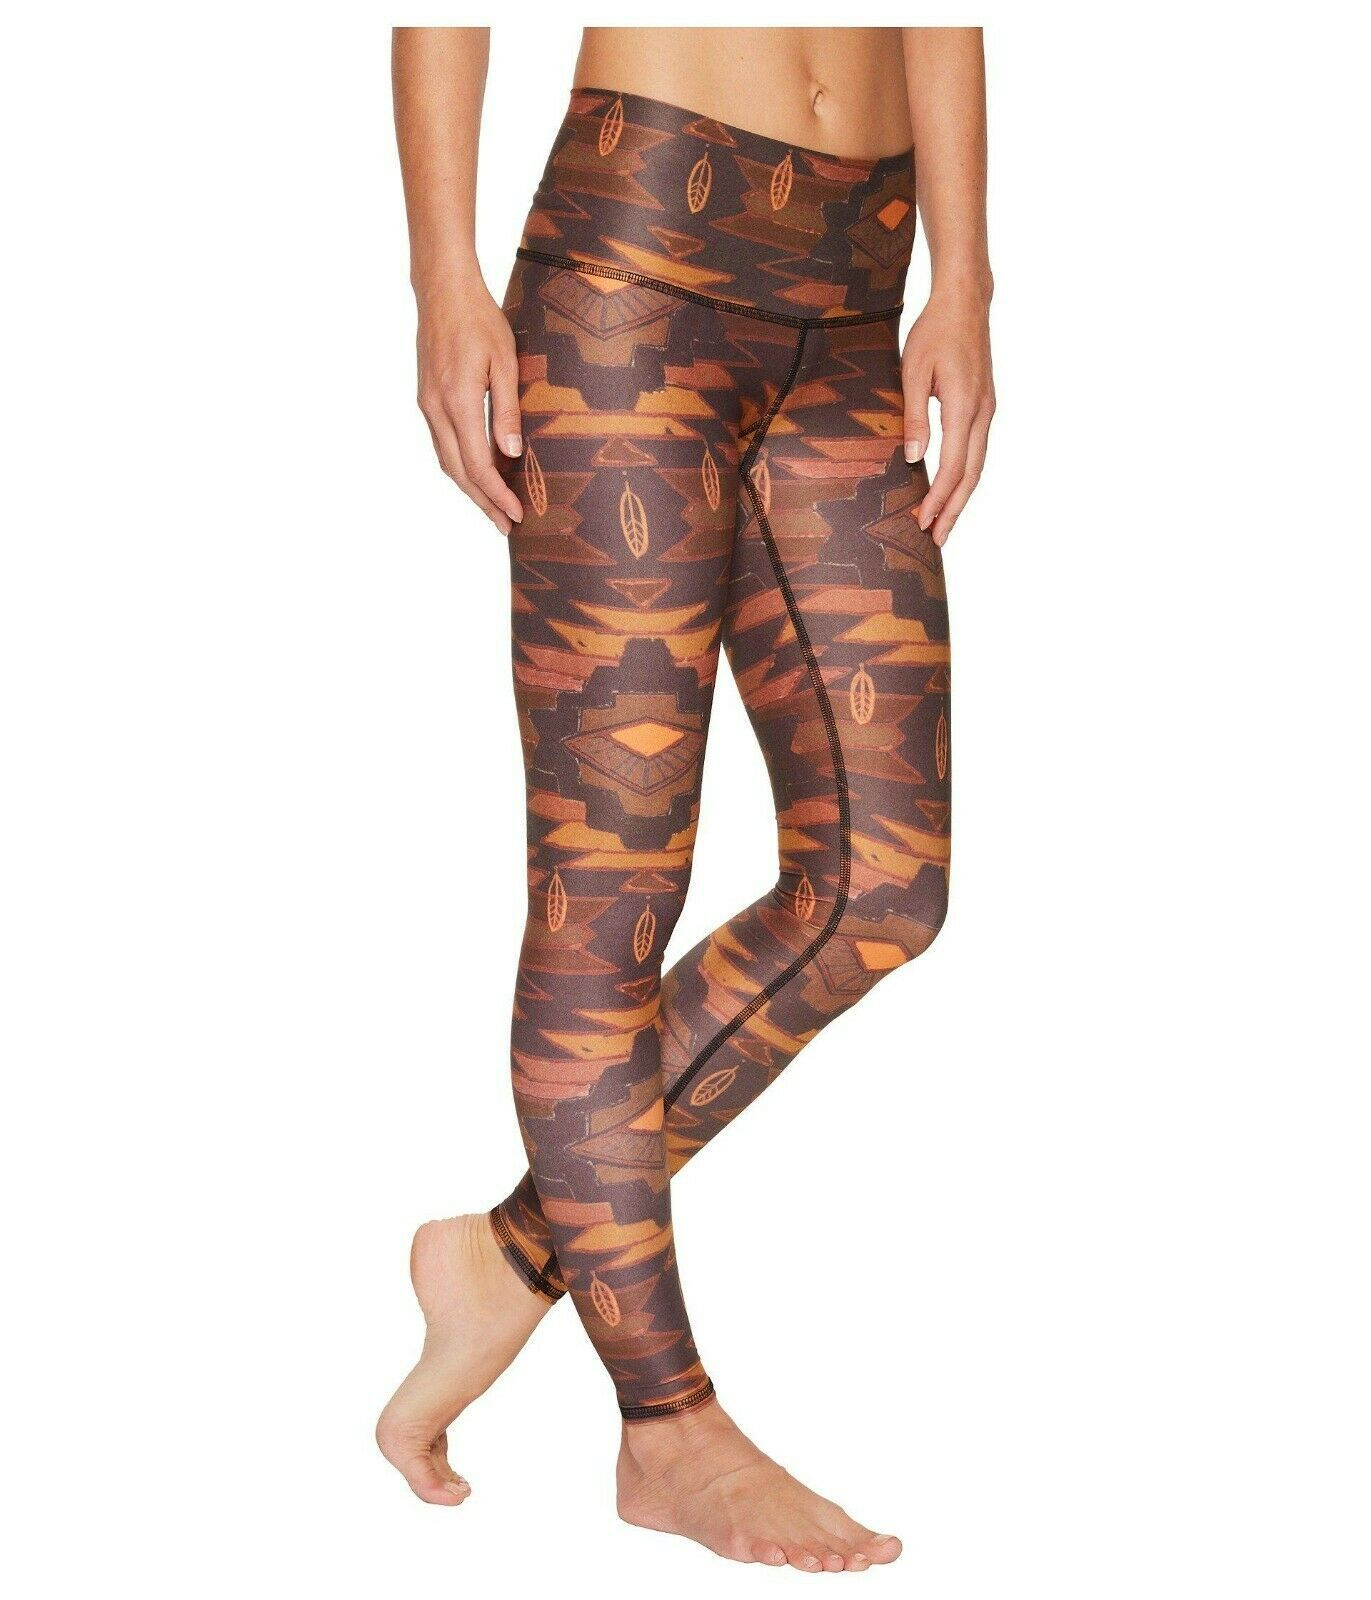 Teeki Donna Leggings Medio Pantalone Southern Cross Pilates Made in USA image 2